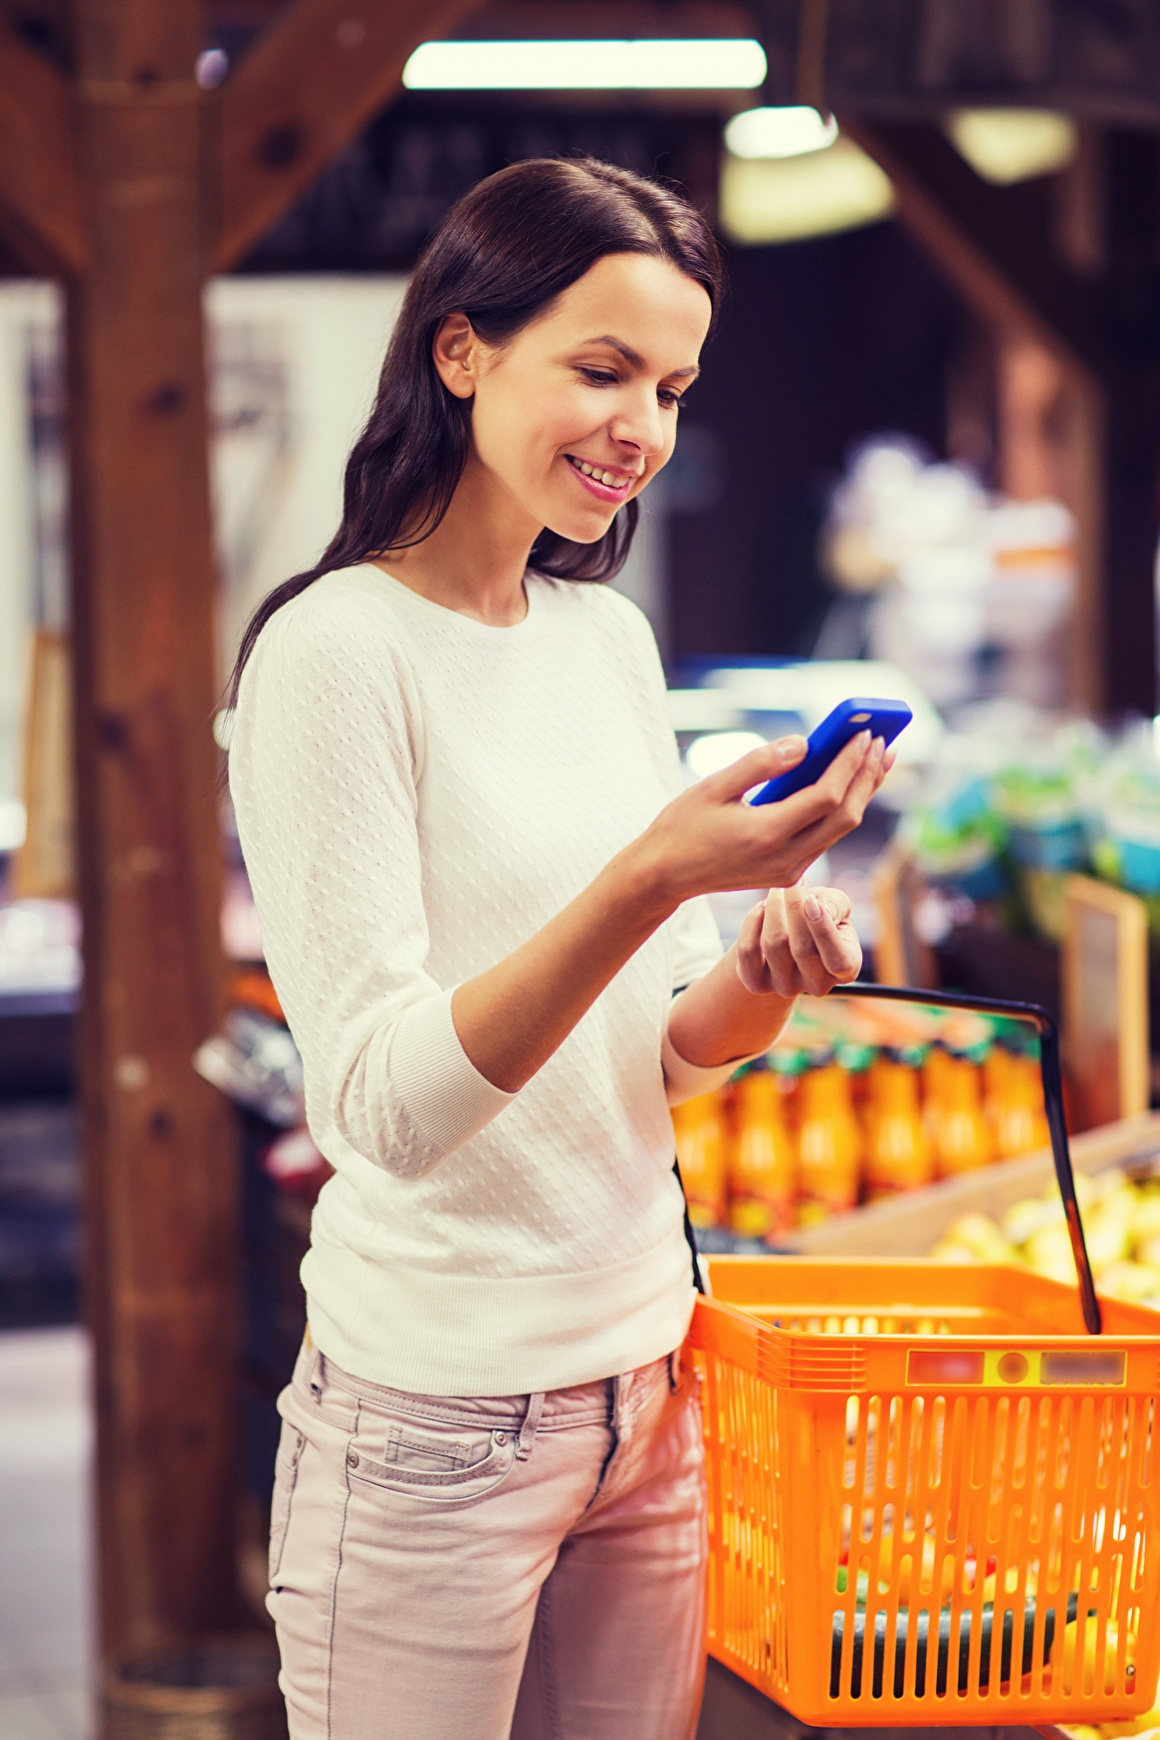 Woman with shopping basket in grocery store, holding her smartphone in her hand...